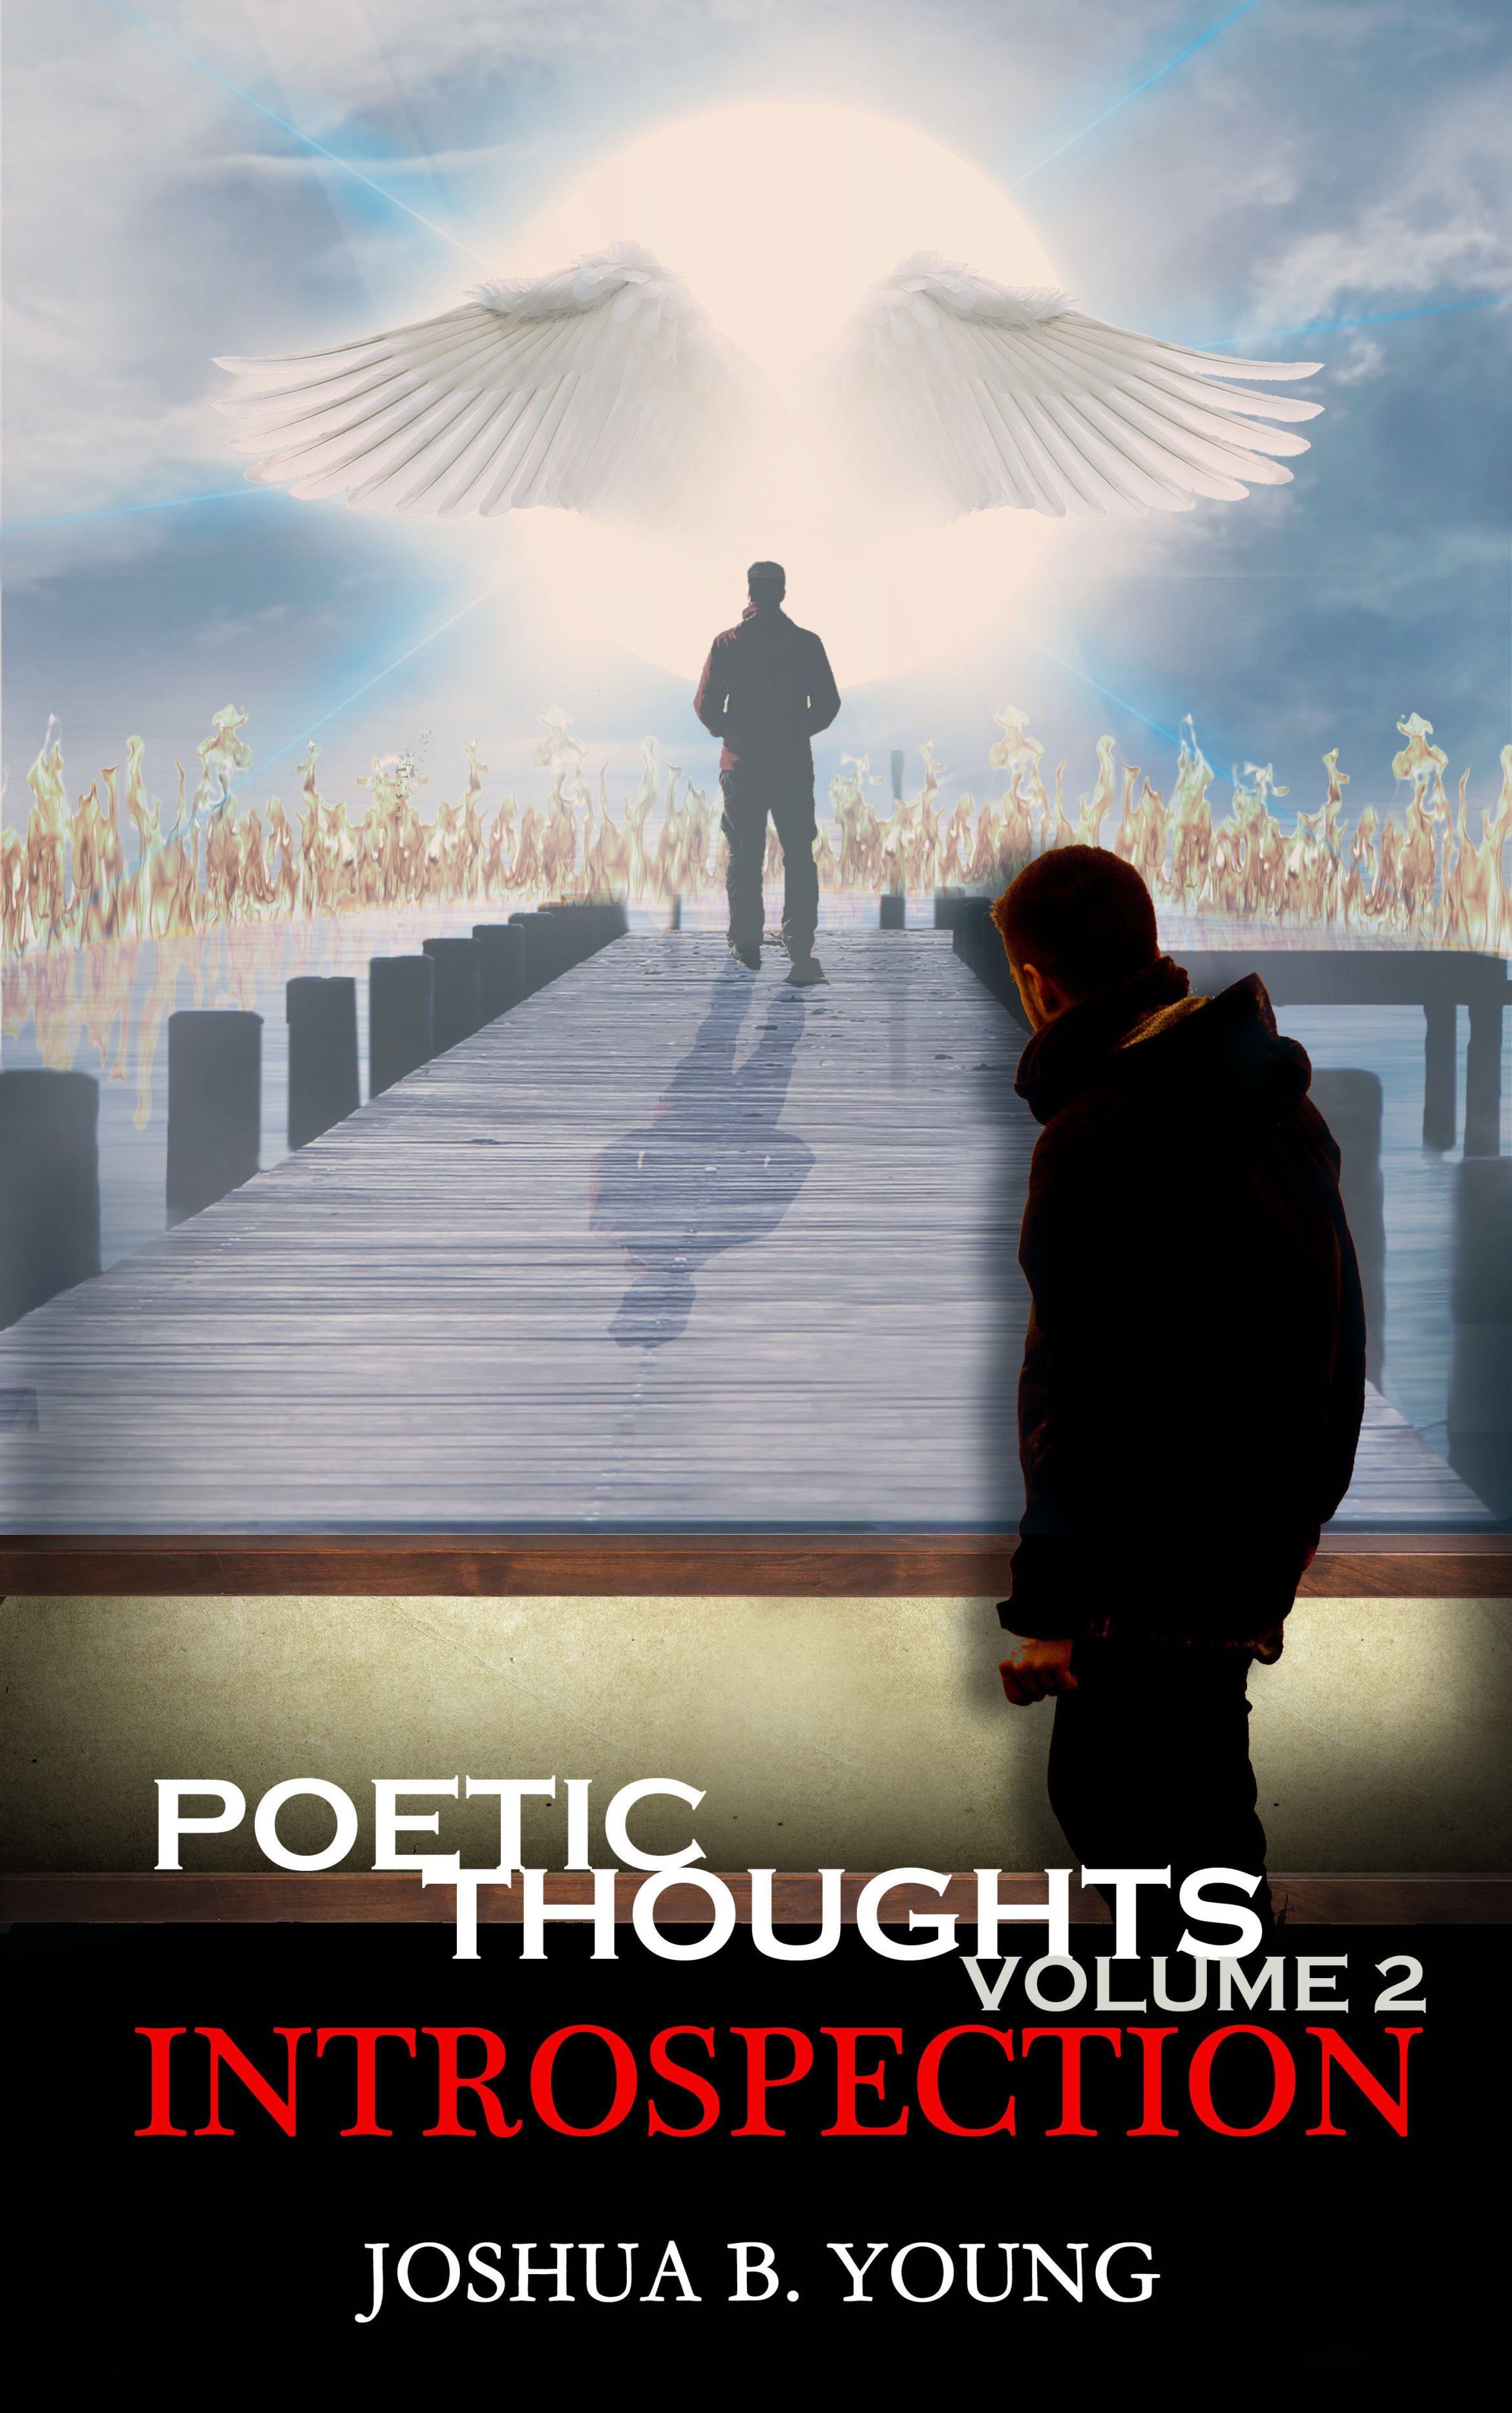 Poetic Thoughts Volume 2: Introspection by Joshua B Young 978-1642546484